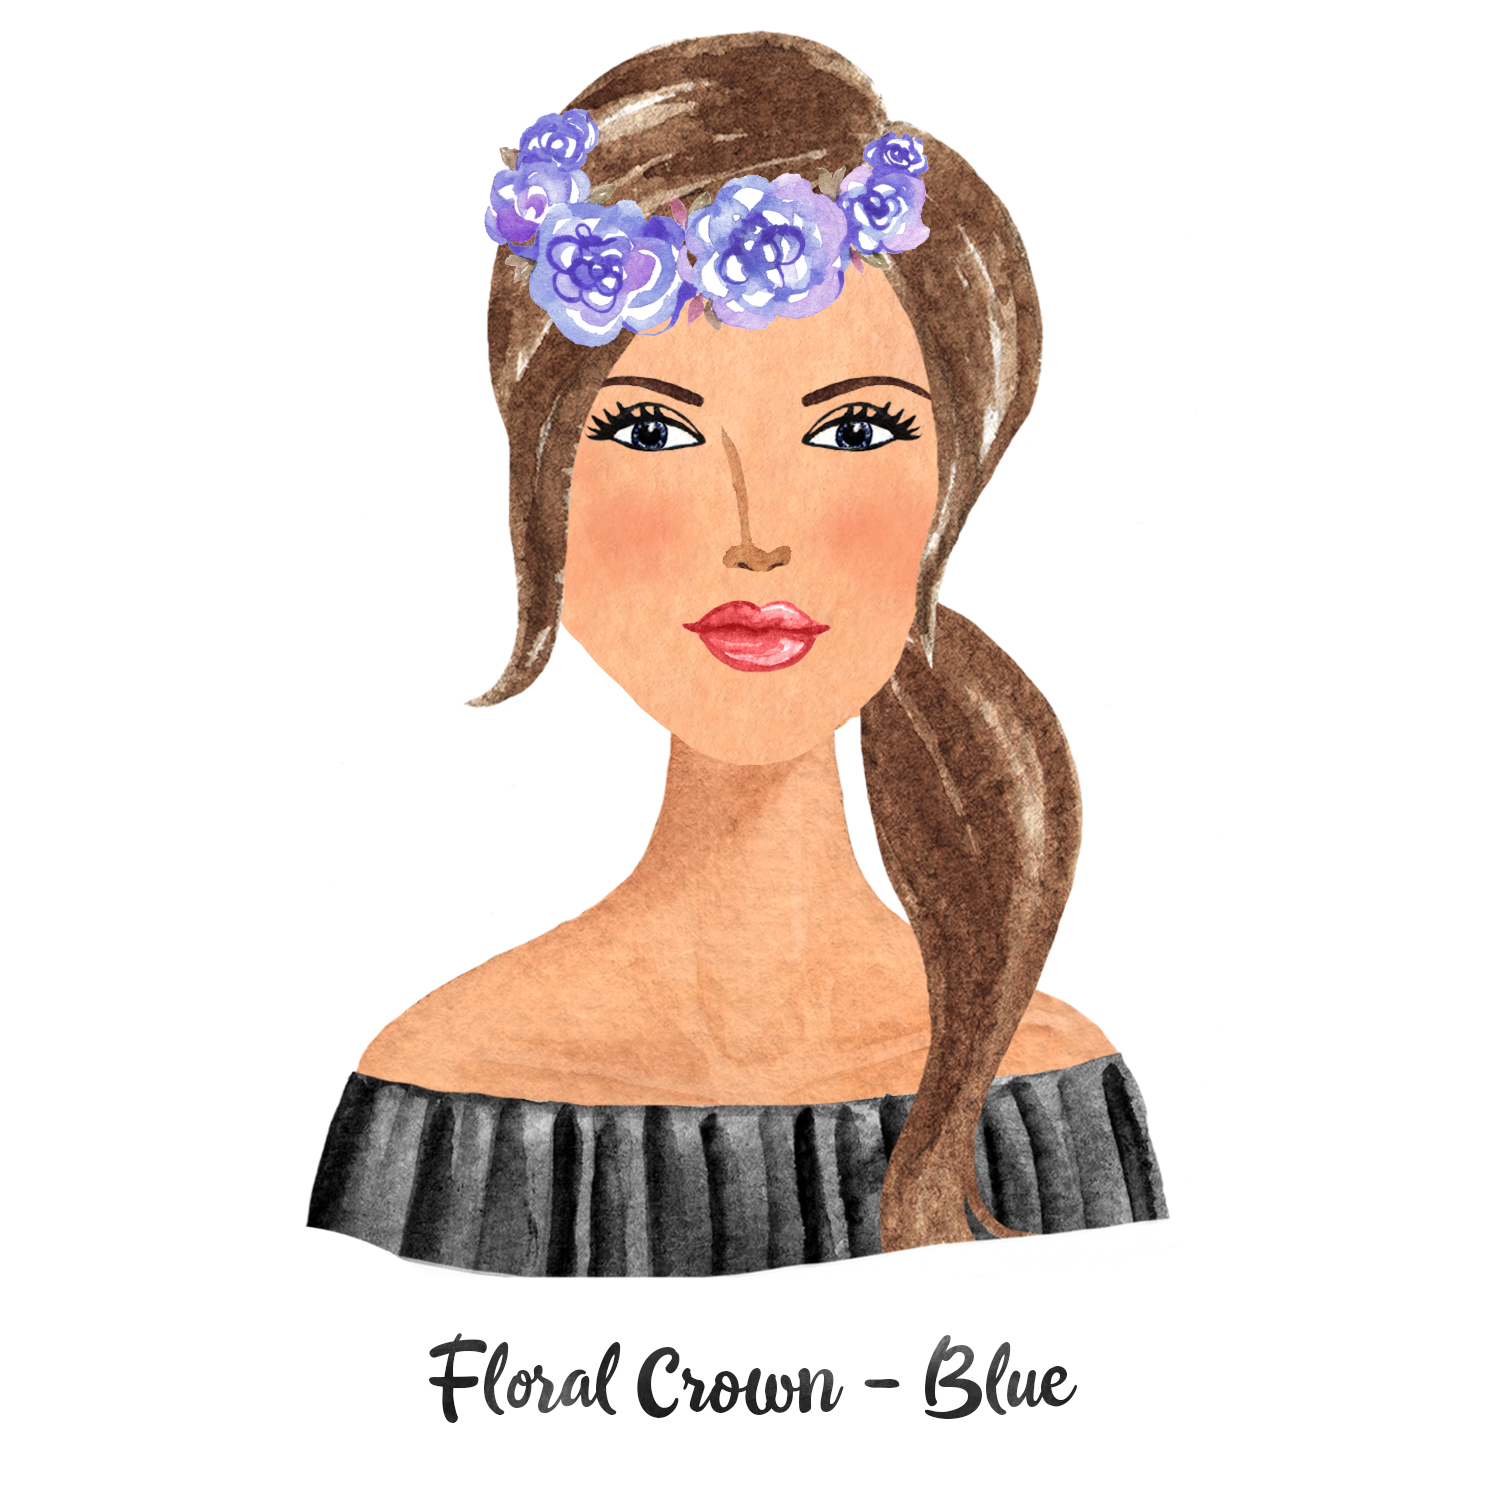 Floral Crown Blue.jpg